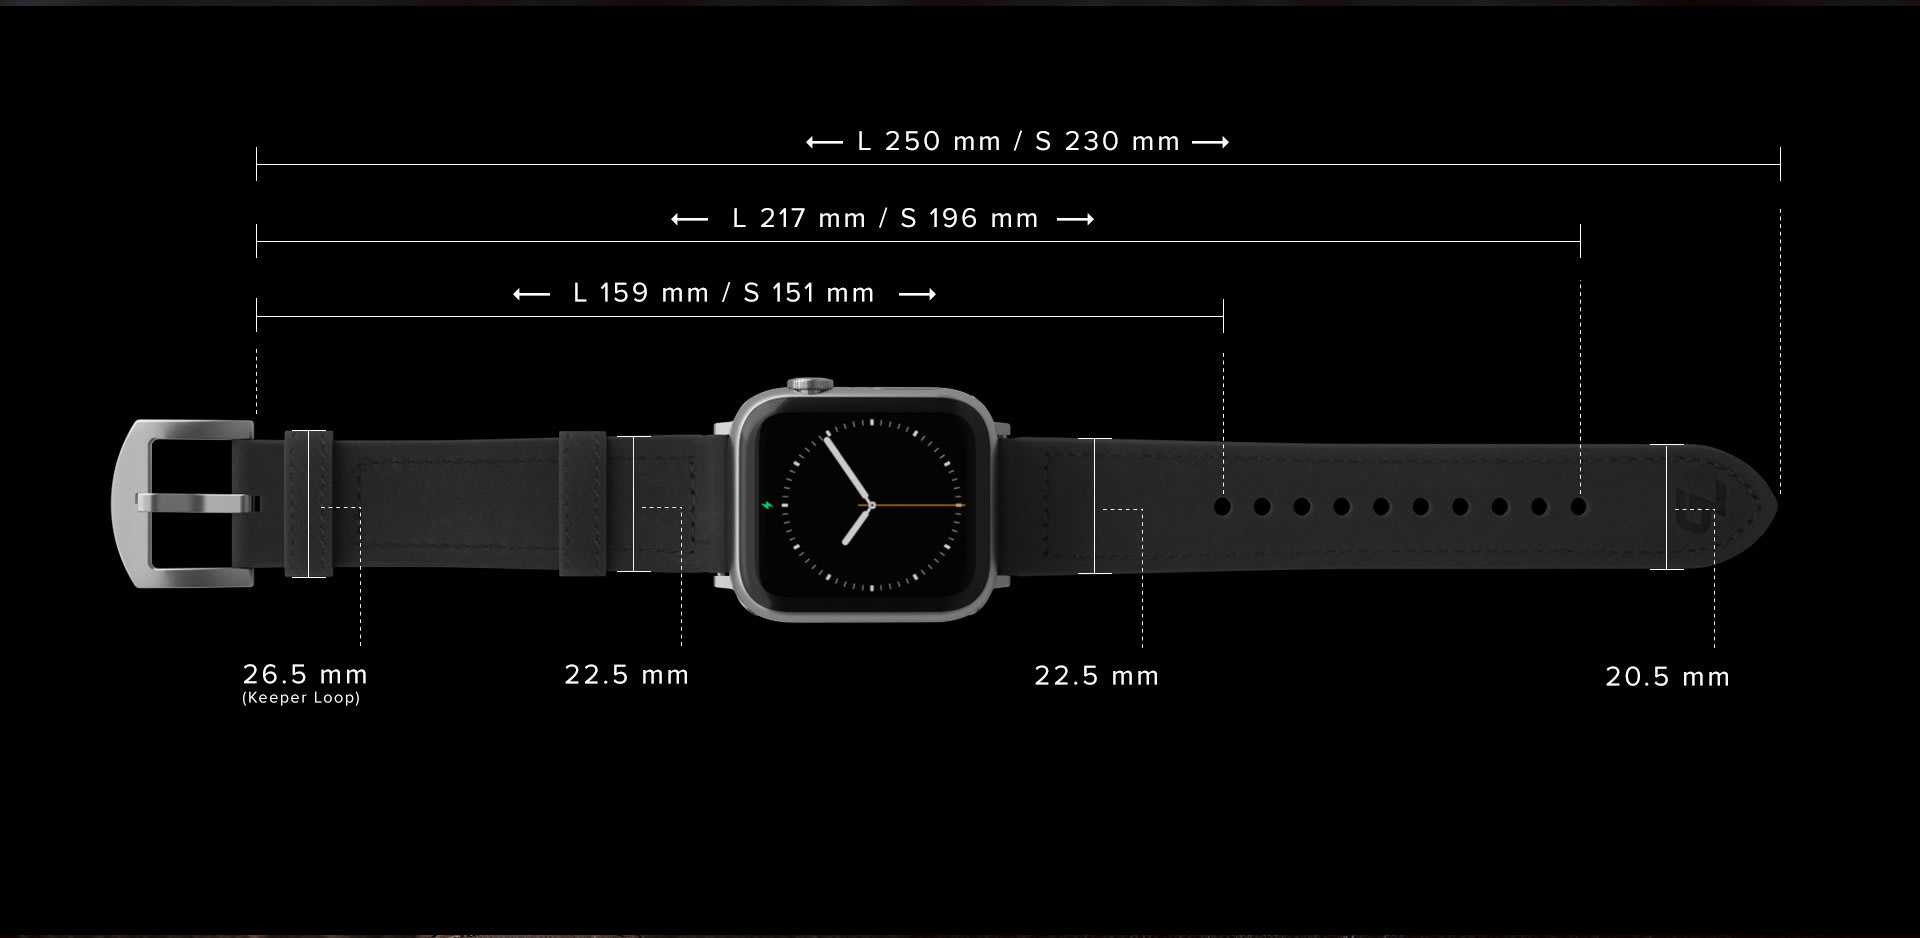 Measurements and dimensions of Vulcan Leather Watch Bands